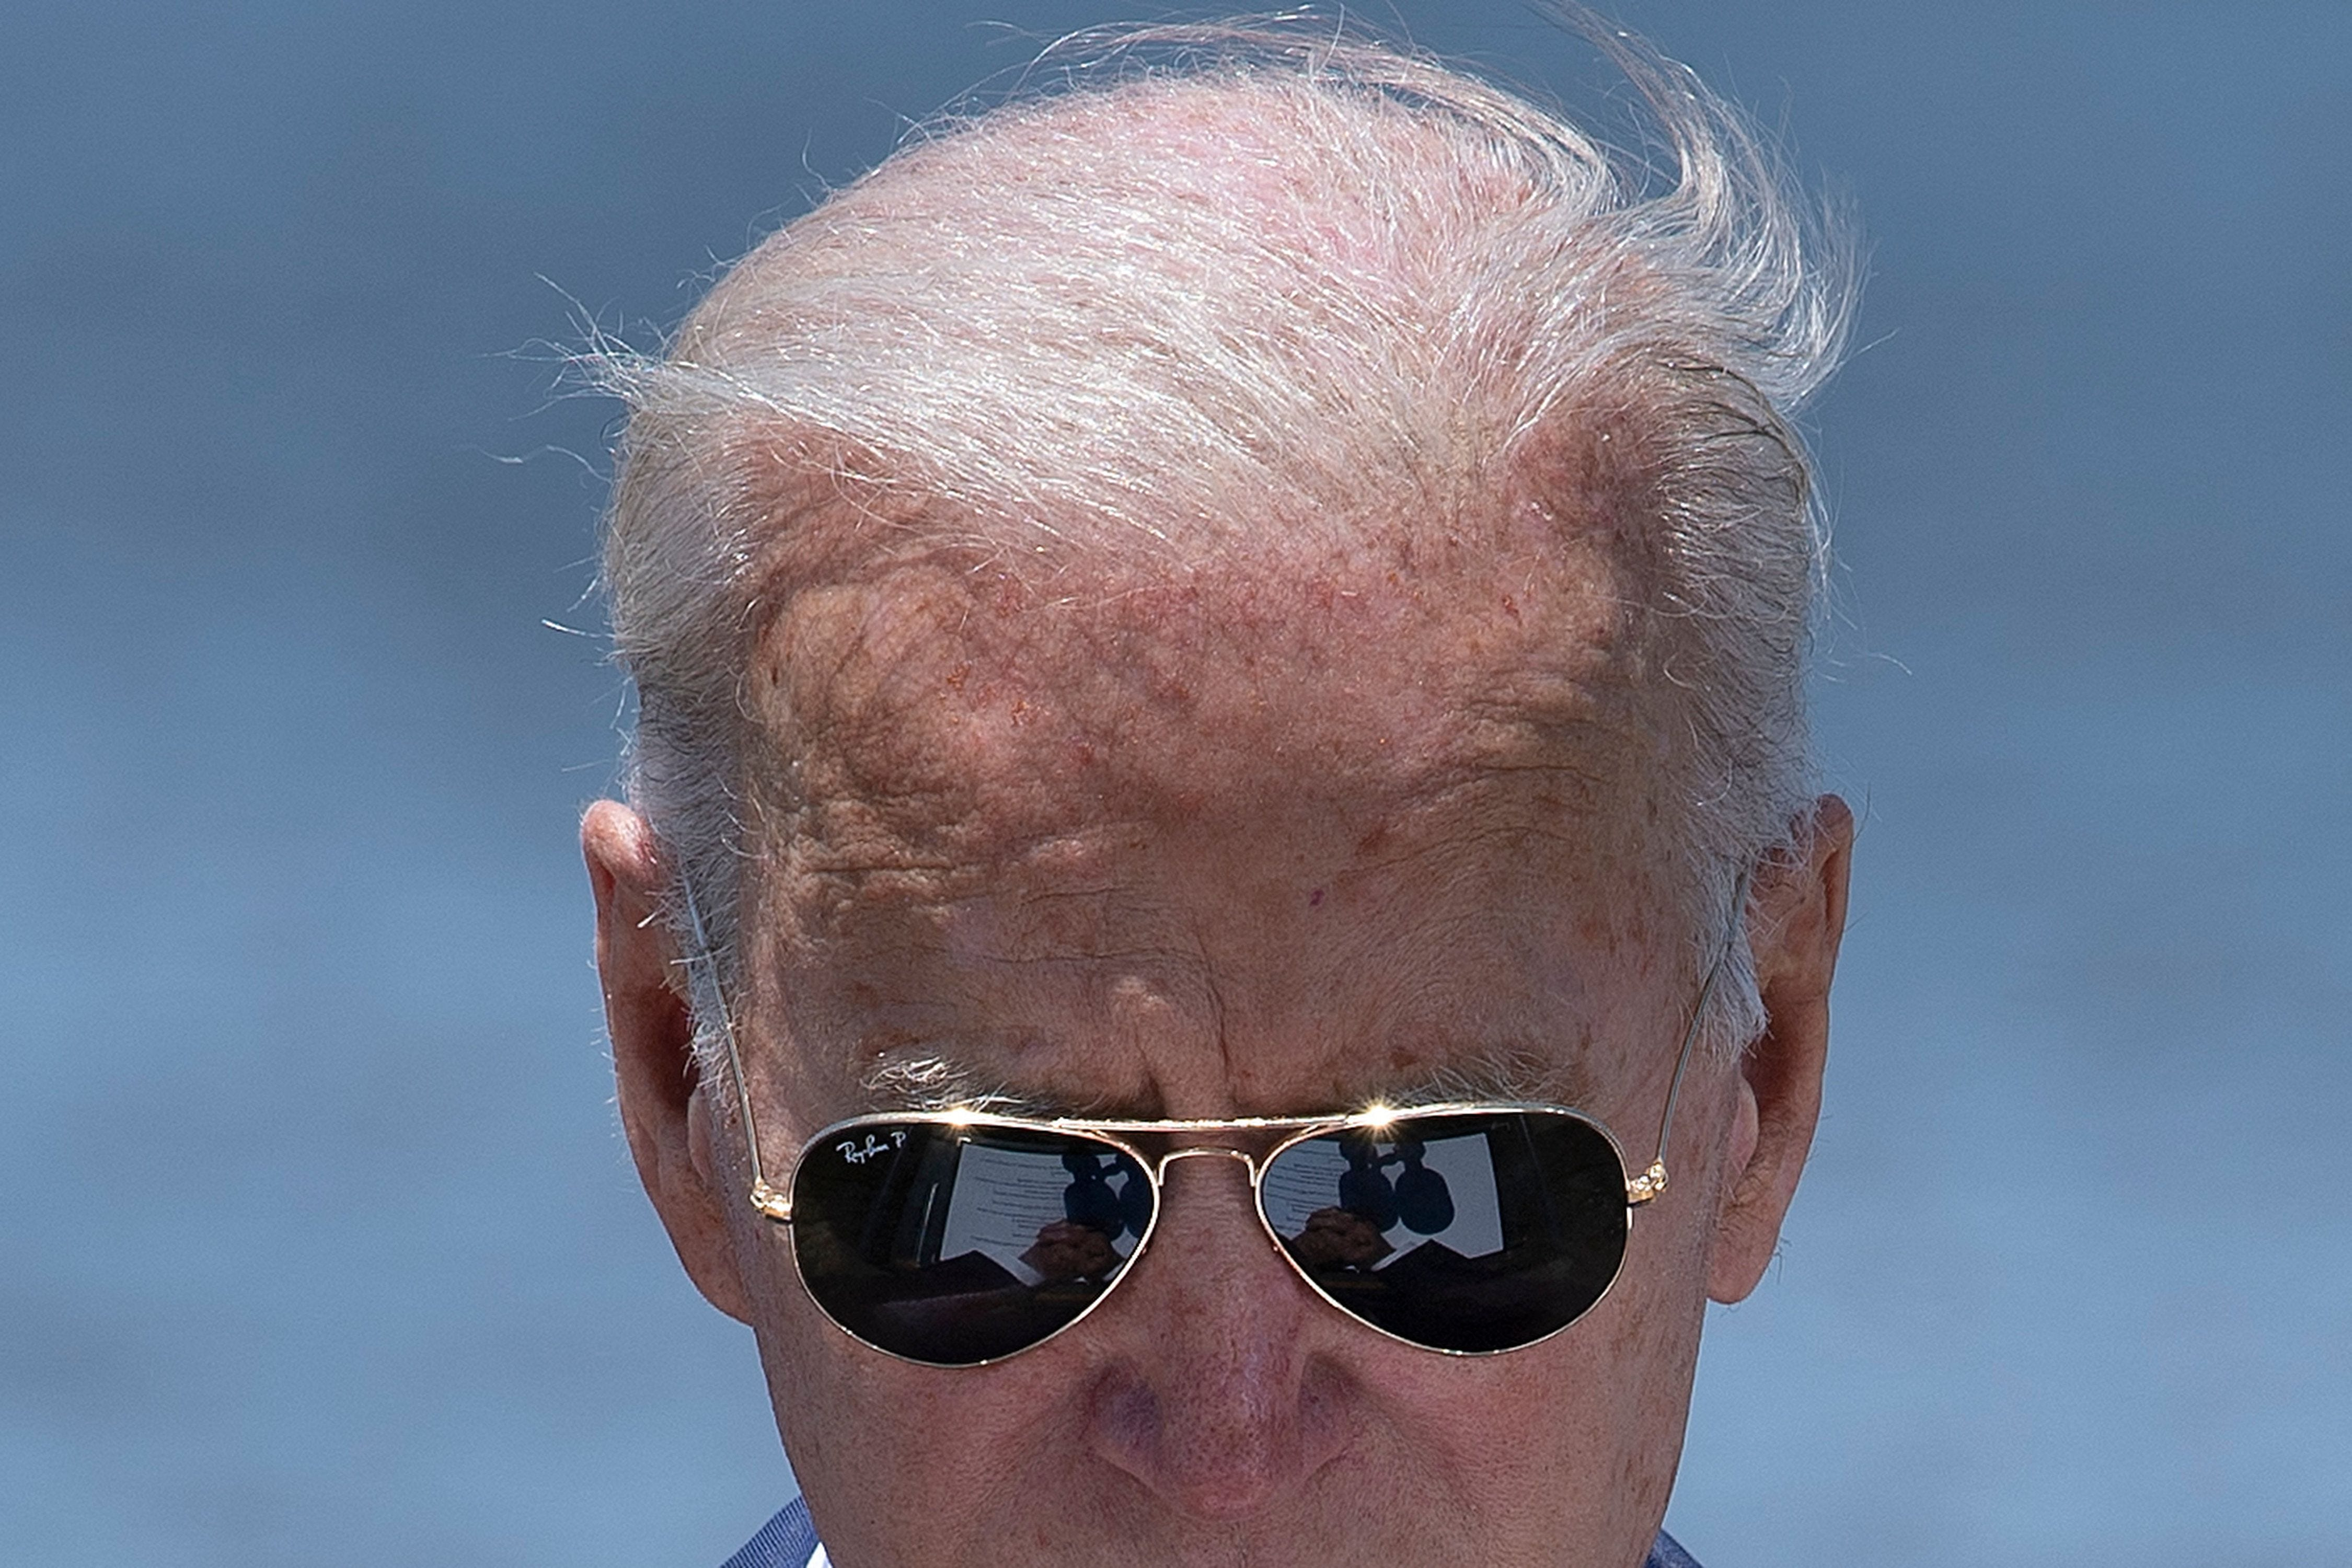 'Reassuringly retro': It may not be formal, but Joe Biden isn't giving up his favorite sunglasses at official functions